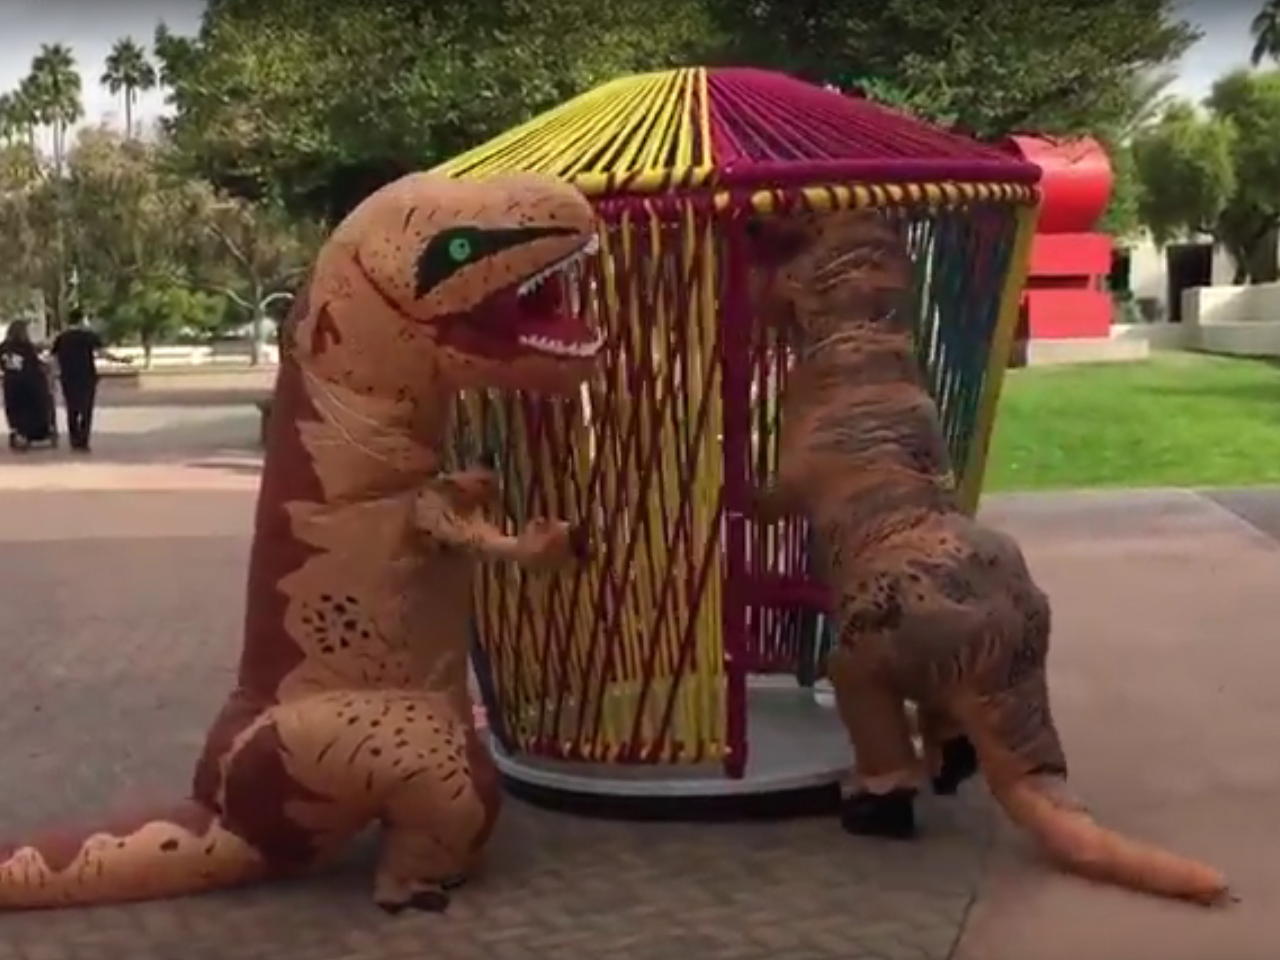 two people in dinosaur costumes interacting with sculptures